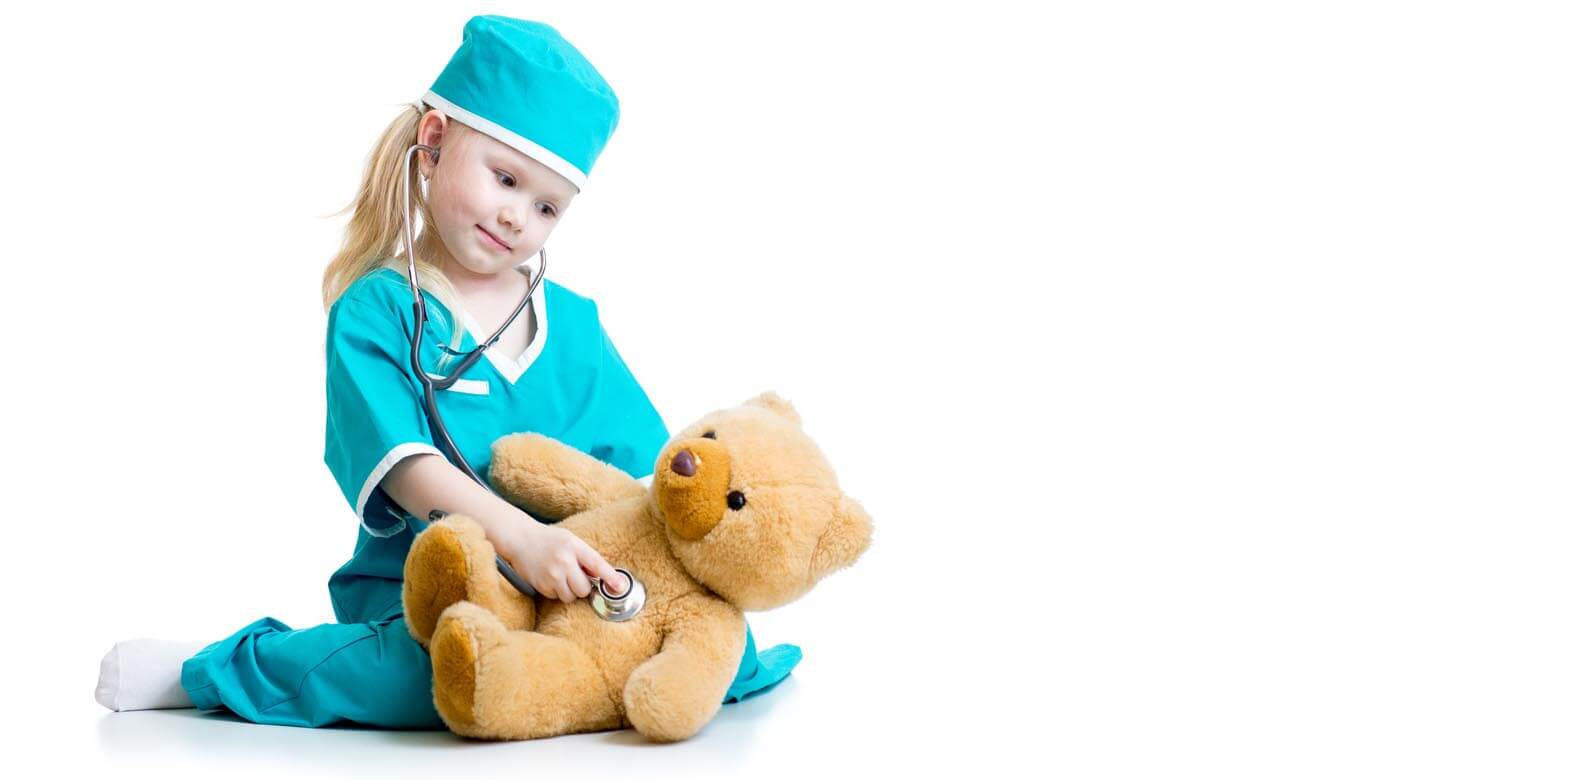 pacificcoastpediatricsurgery_home